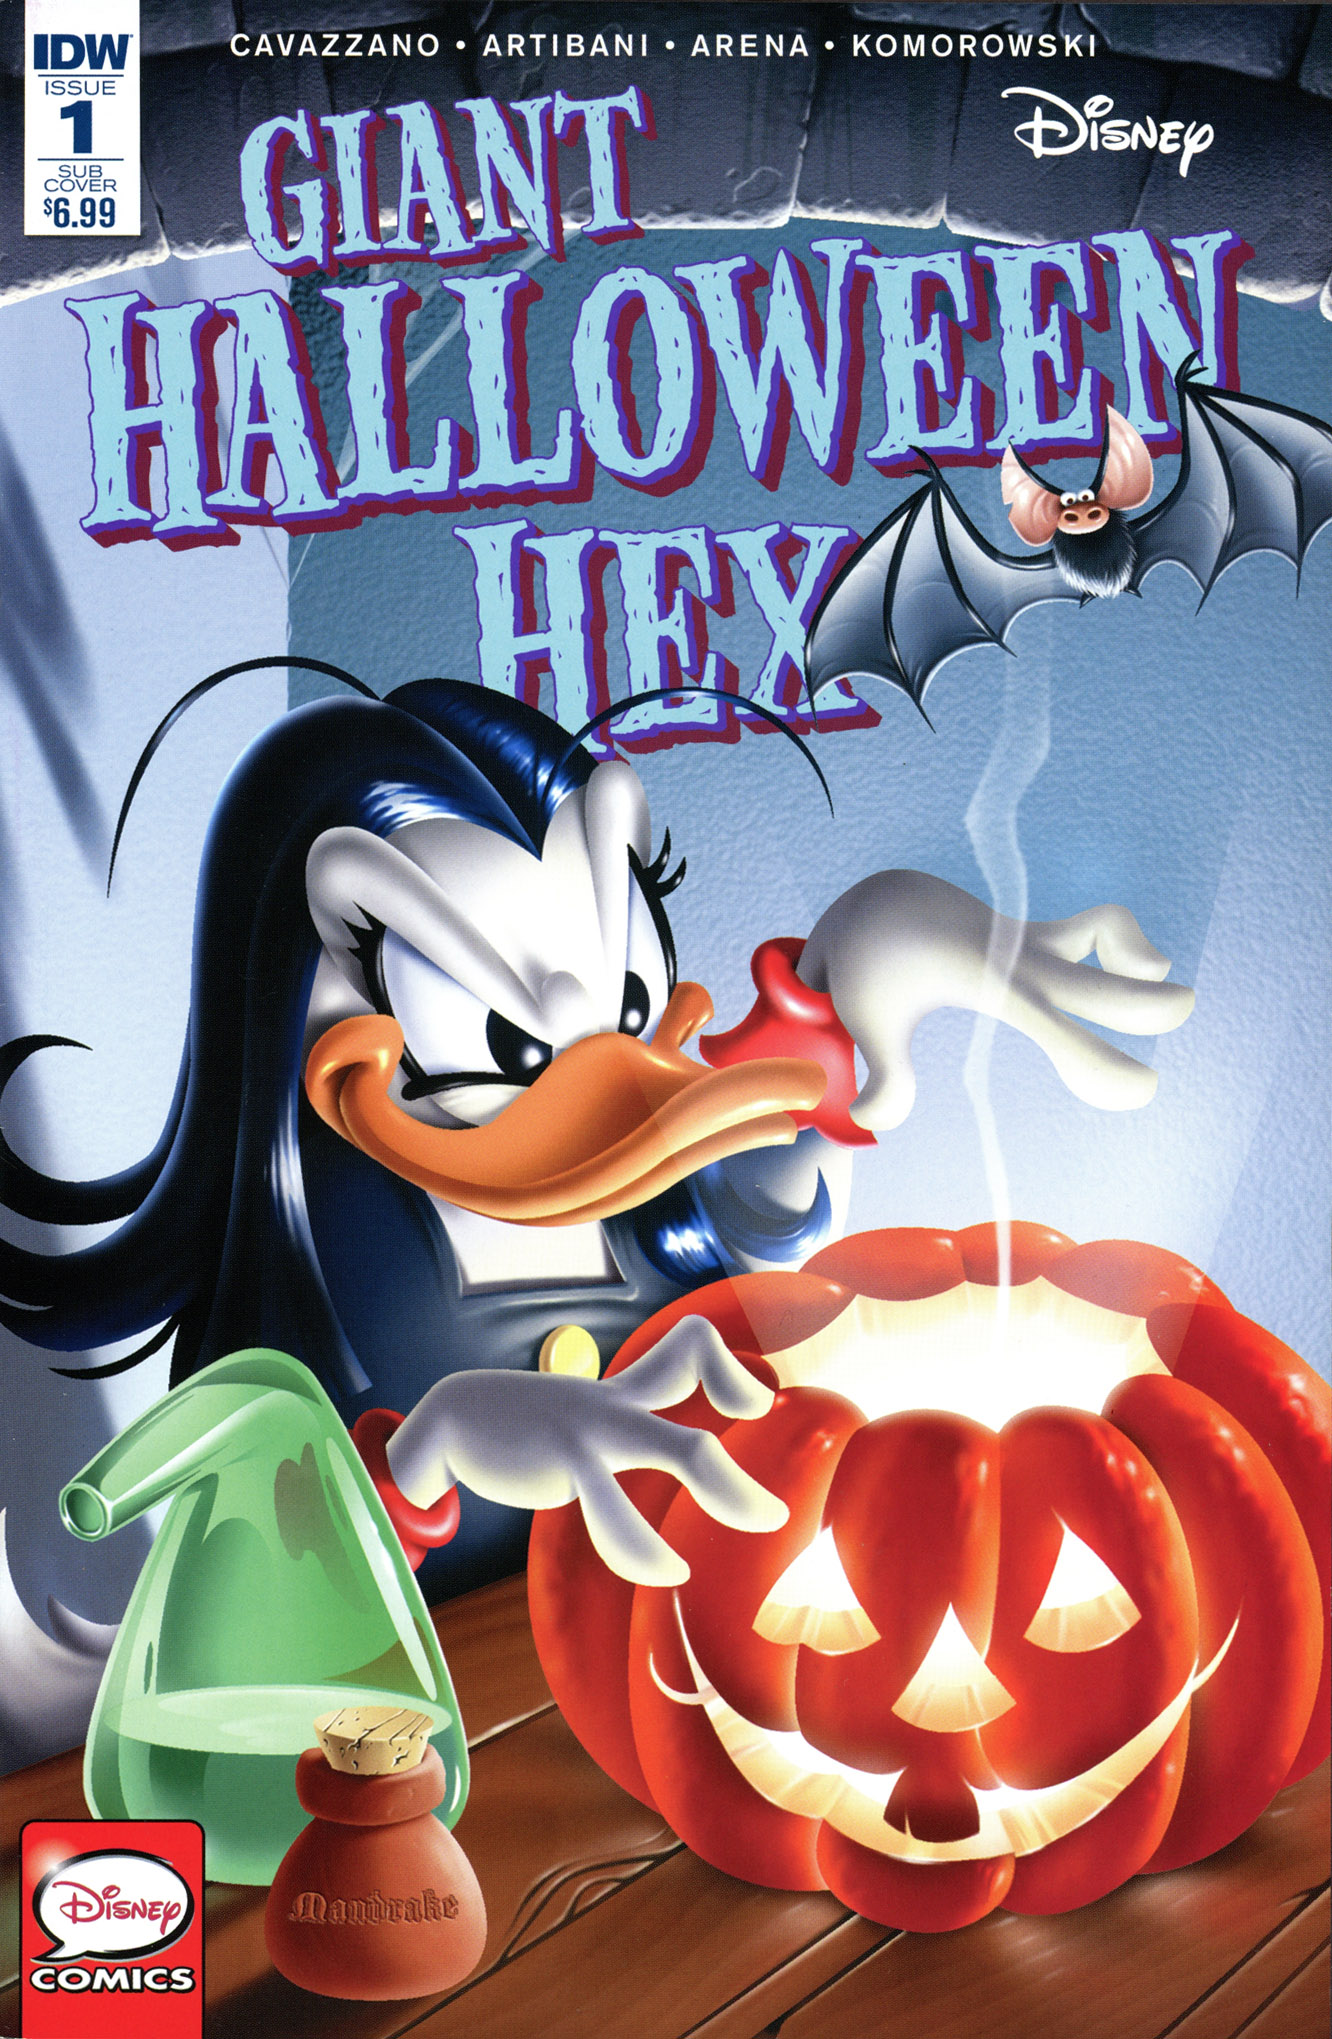 Disney Giant Halloween Hex Full Page 1